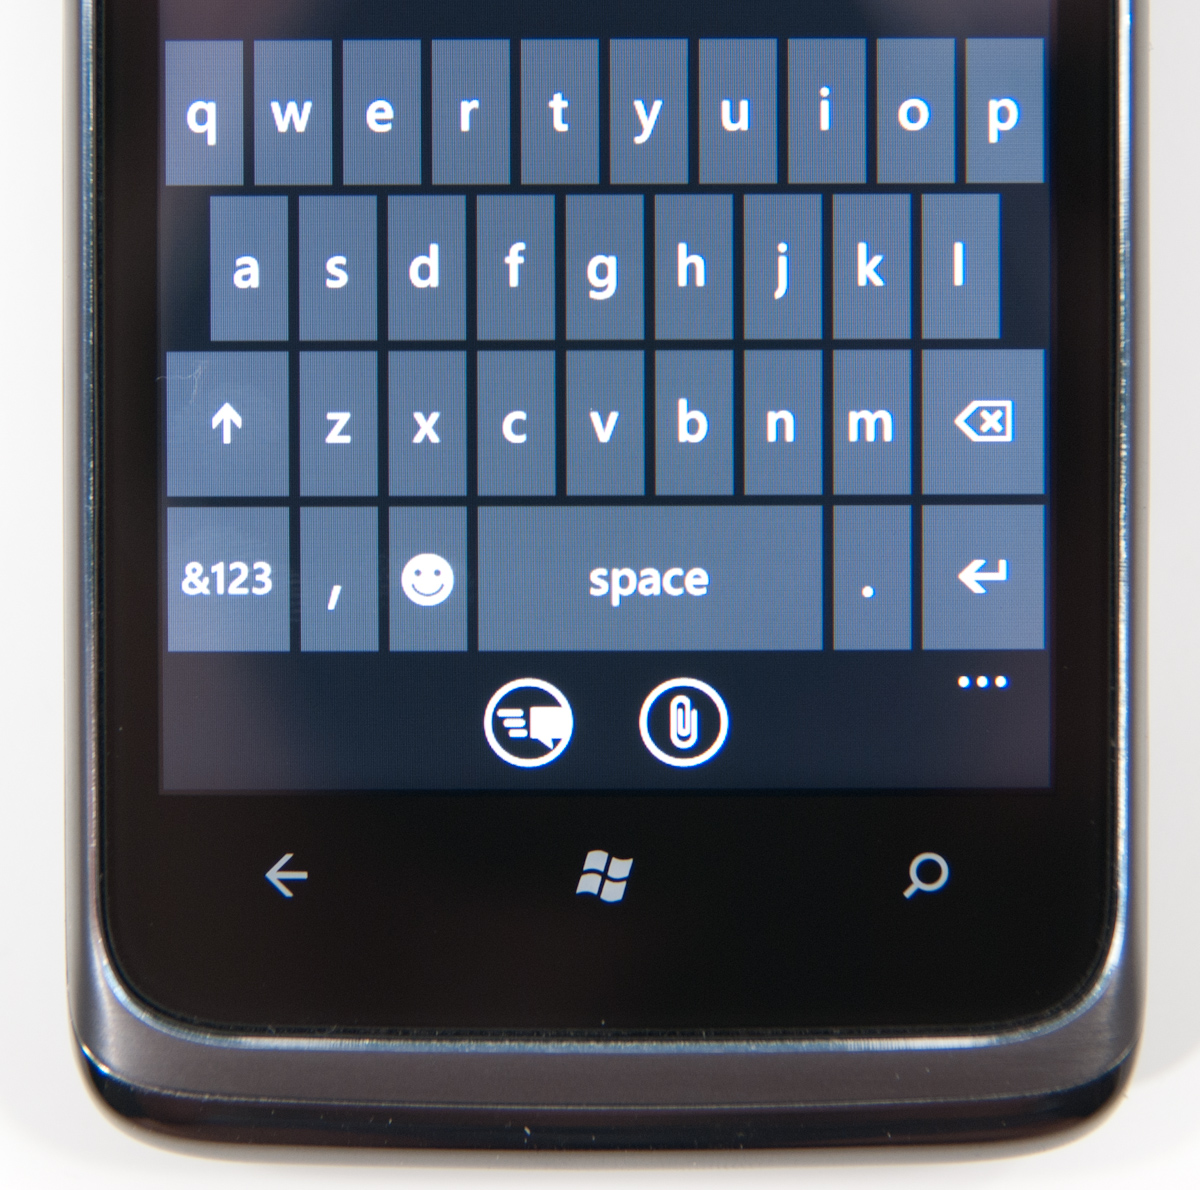 The Keyboard The Windows Phone 7 Review